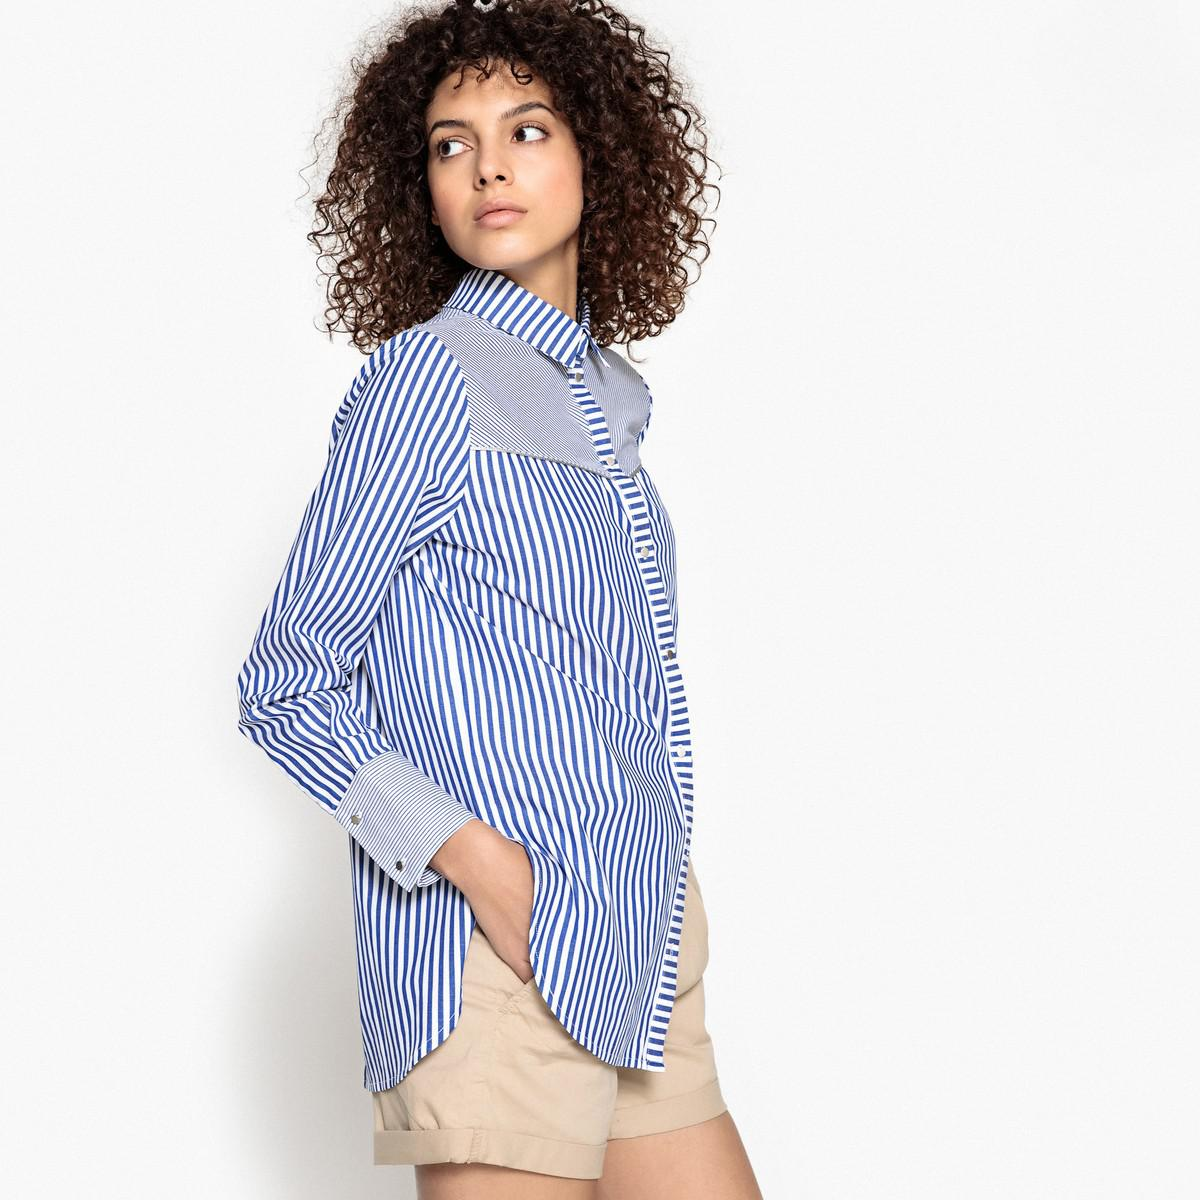 8d1f1ae56bb12 Lyst - Suncoo Laura Striped Open Back Shirt in Blue